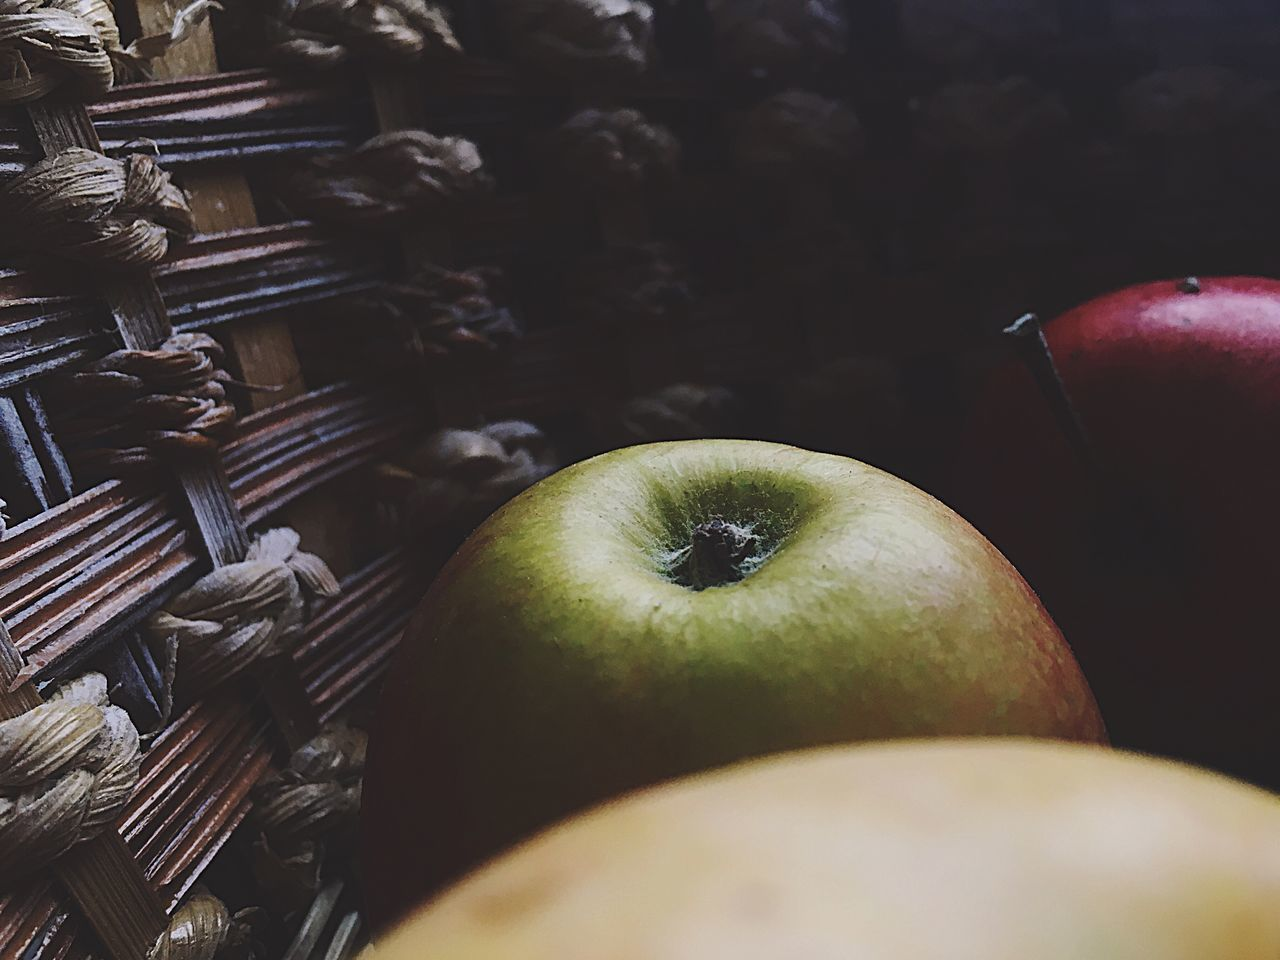 🍏🍎🍏🍎 Fruit Eye4photography  Food And Drink Healthy Eating Indoors  Food Freshness Close-up No People Day EyeEmNewHere EyeEm Eyeemphoto Lovephotography  Backgrounds Apples Summertime Eyemphotography Food And Drink View Yellow Yellow&green EyeEm Best Shots Followme Country Life